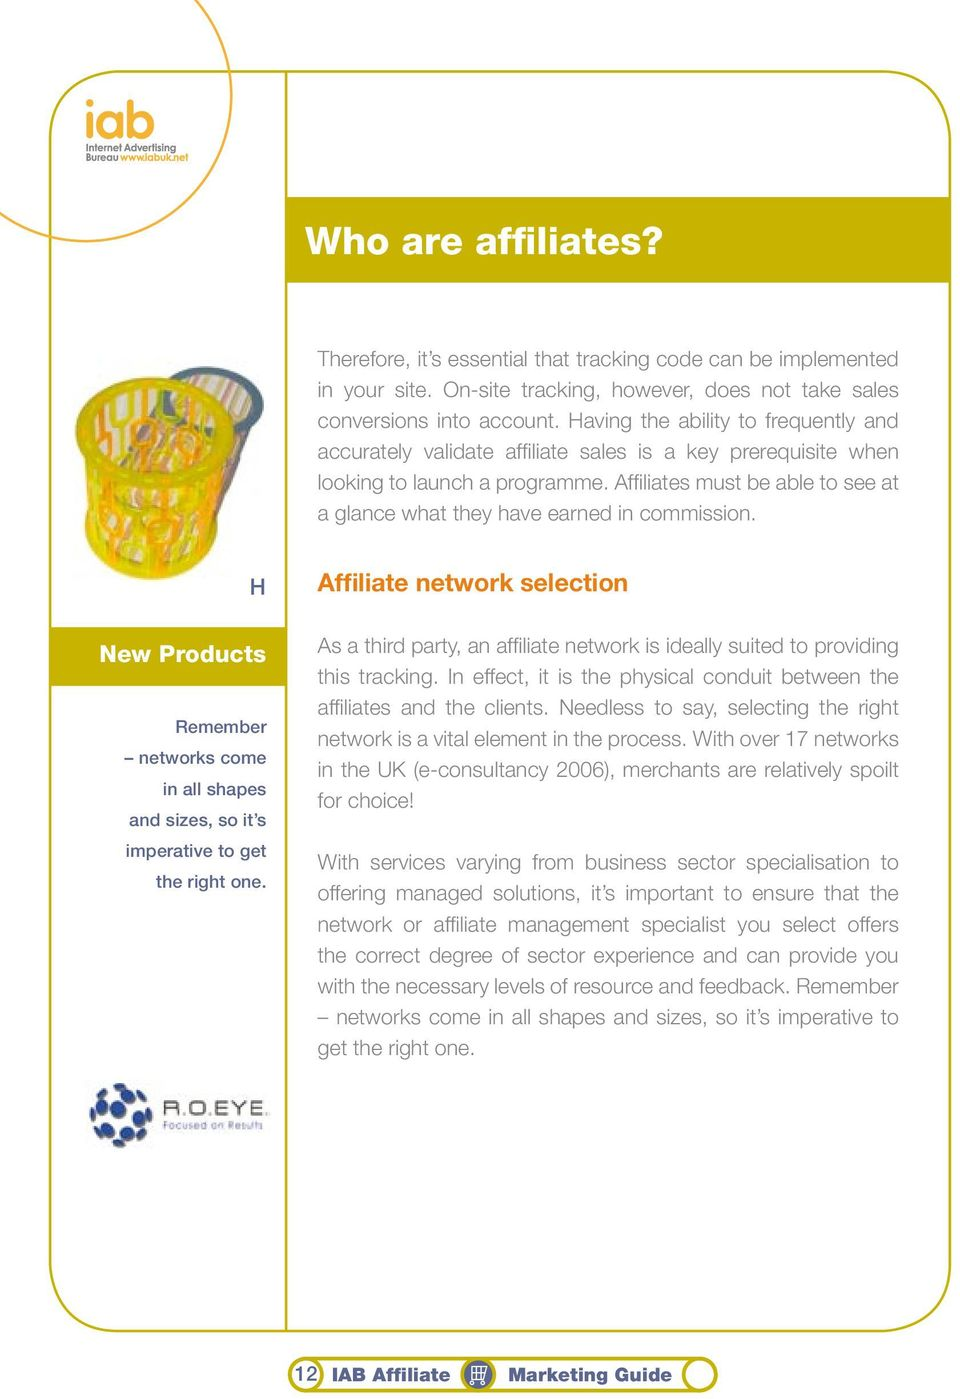 Affiliates must be able to see at a glance what they have earned in commission. H New Products Remember networks come in all shapes and sizes, so it s imperative to get the right one.